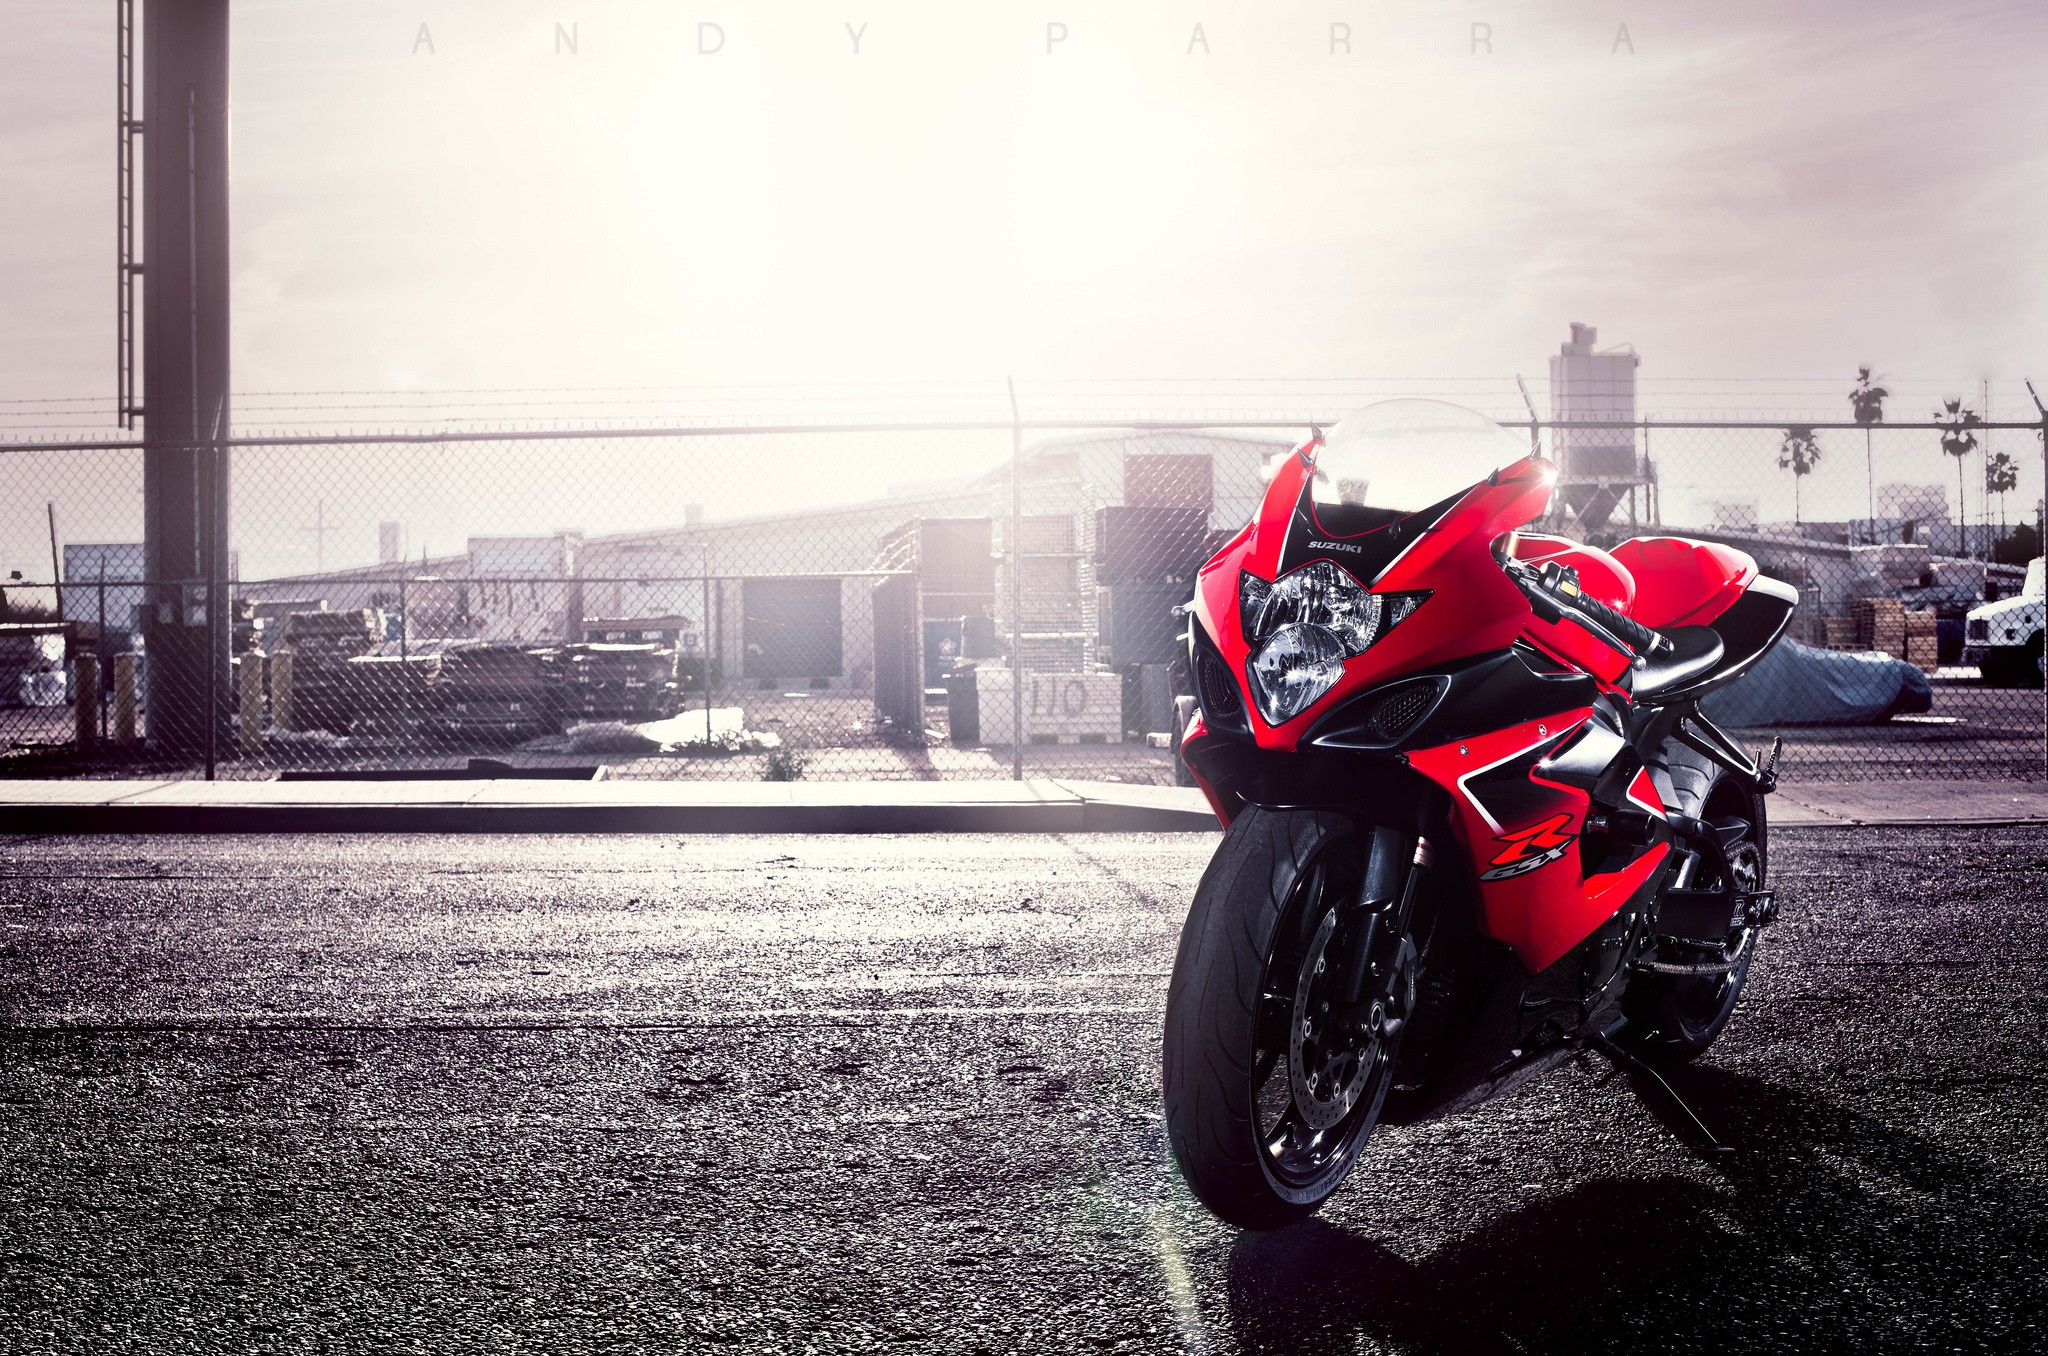 free-download-motorcycle-wallpapers | wallpaper.wiki